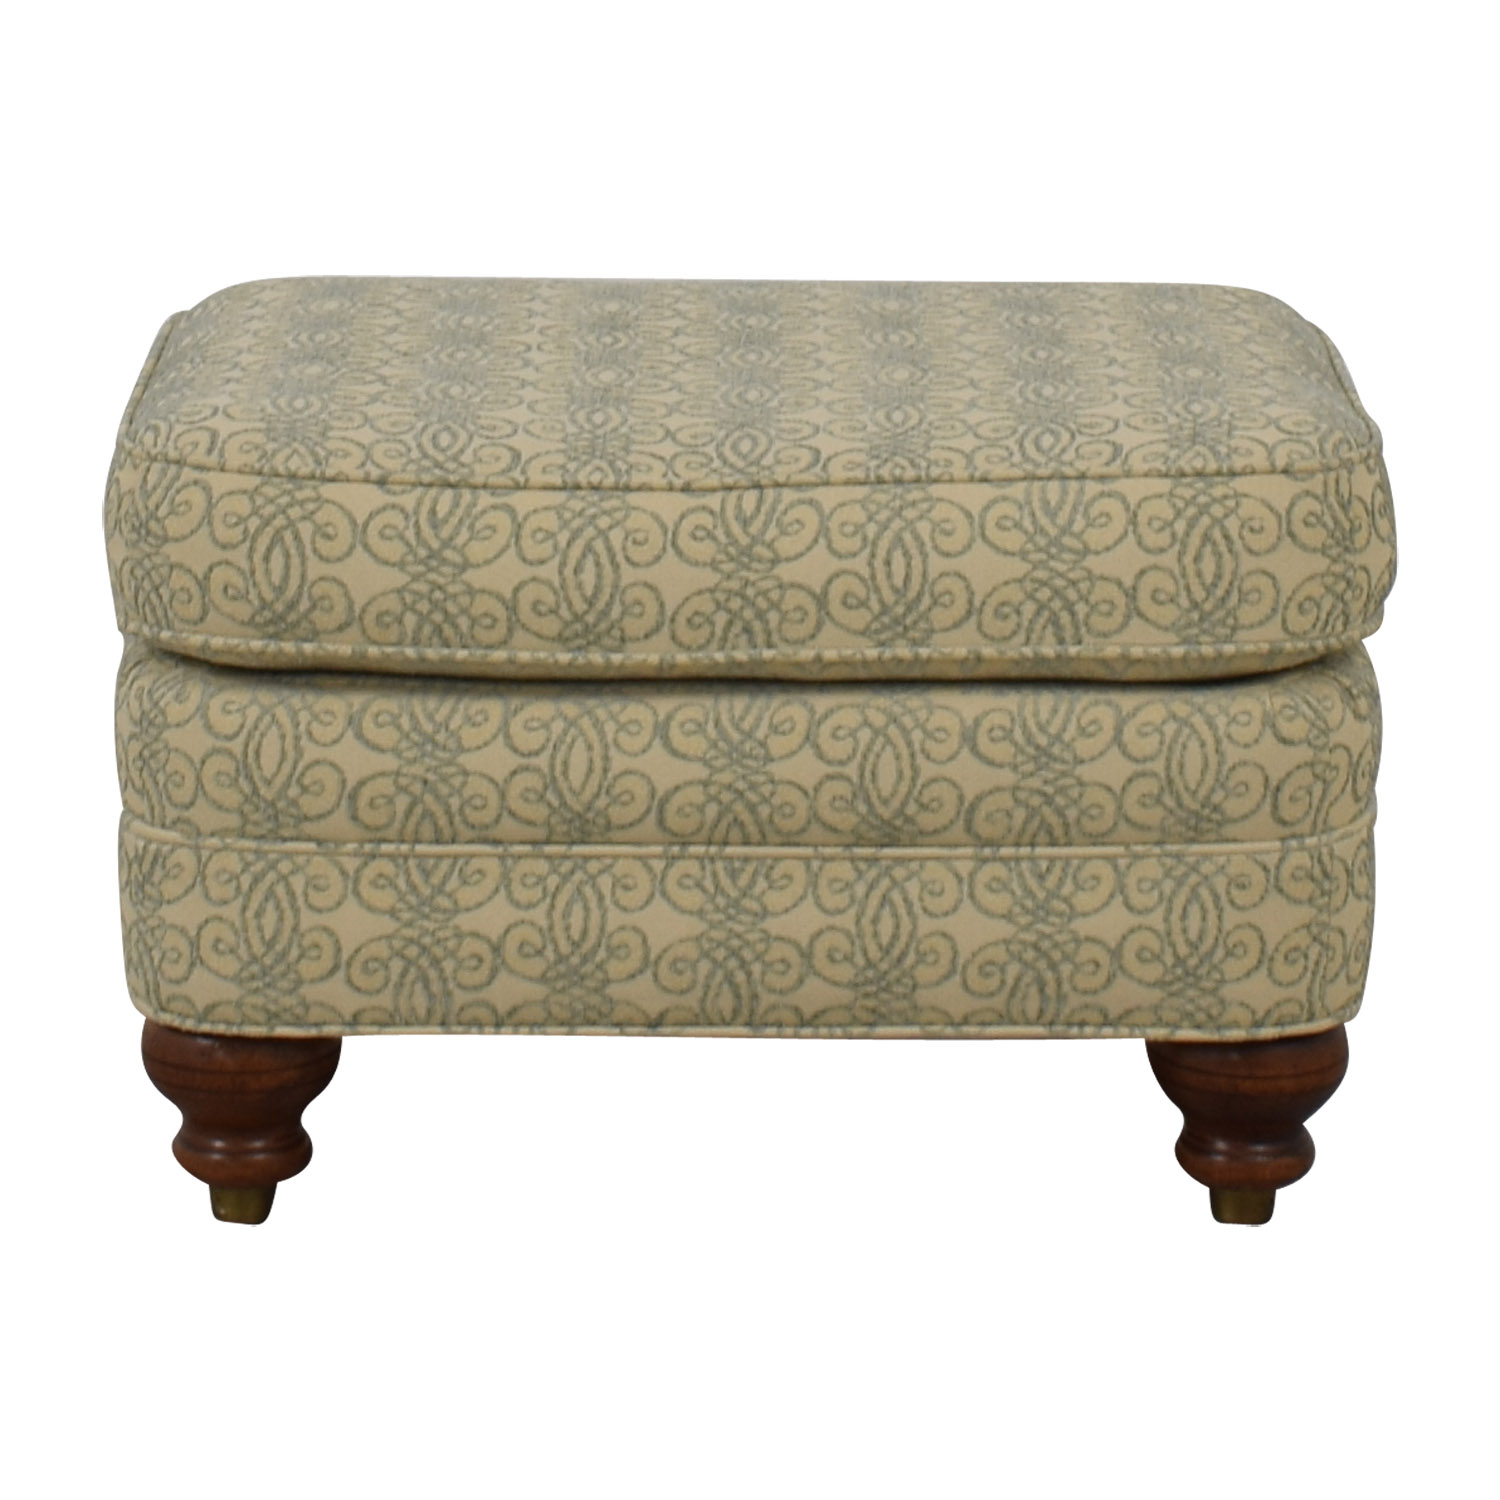 Ethan Allen Print Upholstered Ottoman / Chairs